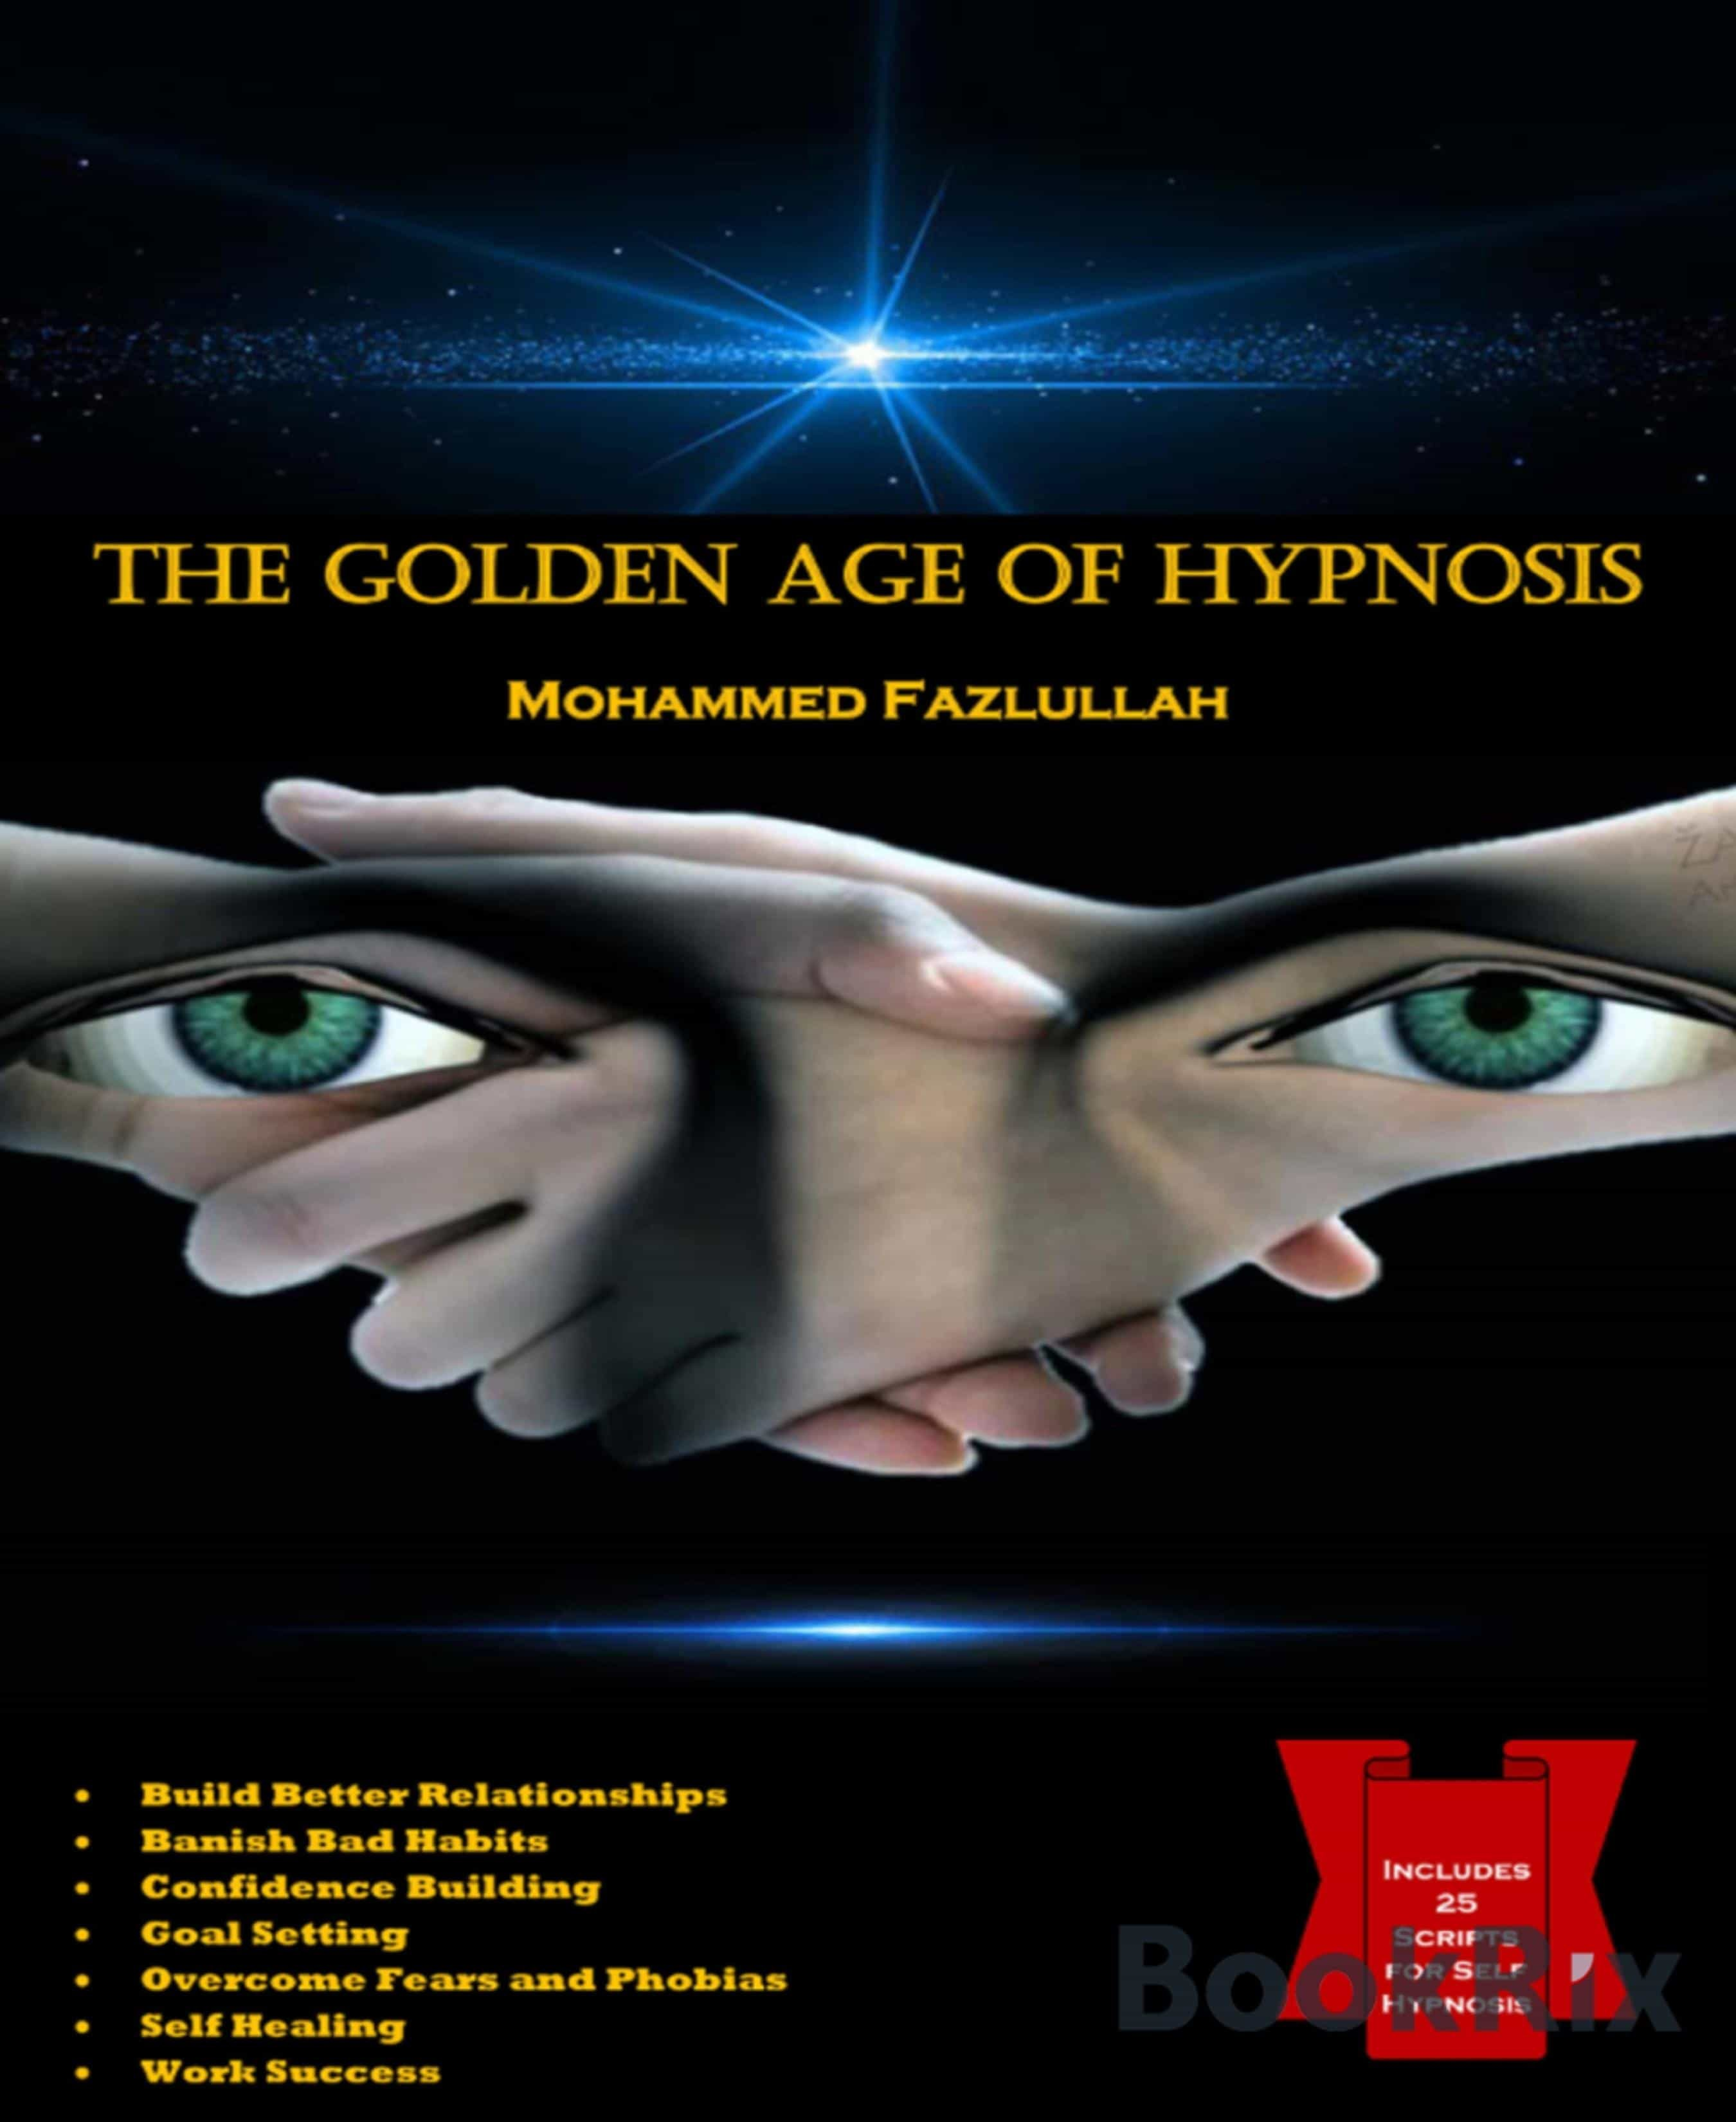 THE GOLDEN AGE OF HYPNOSIS